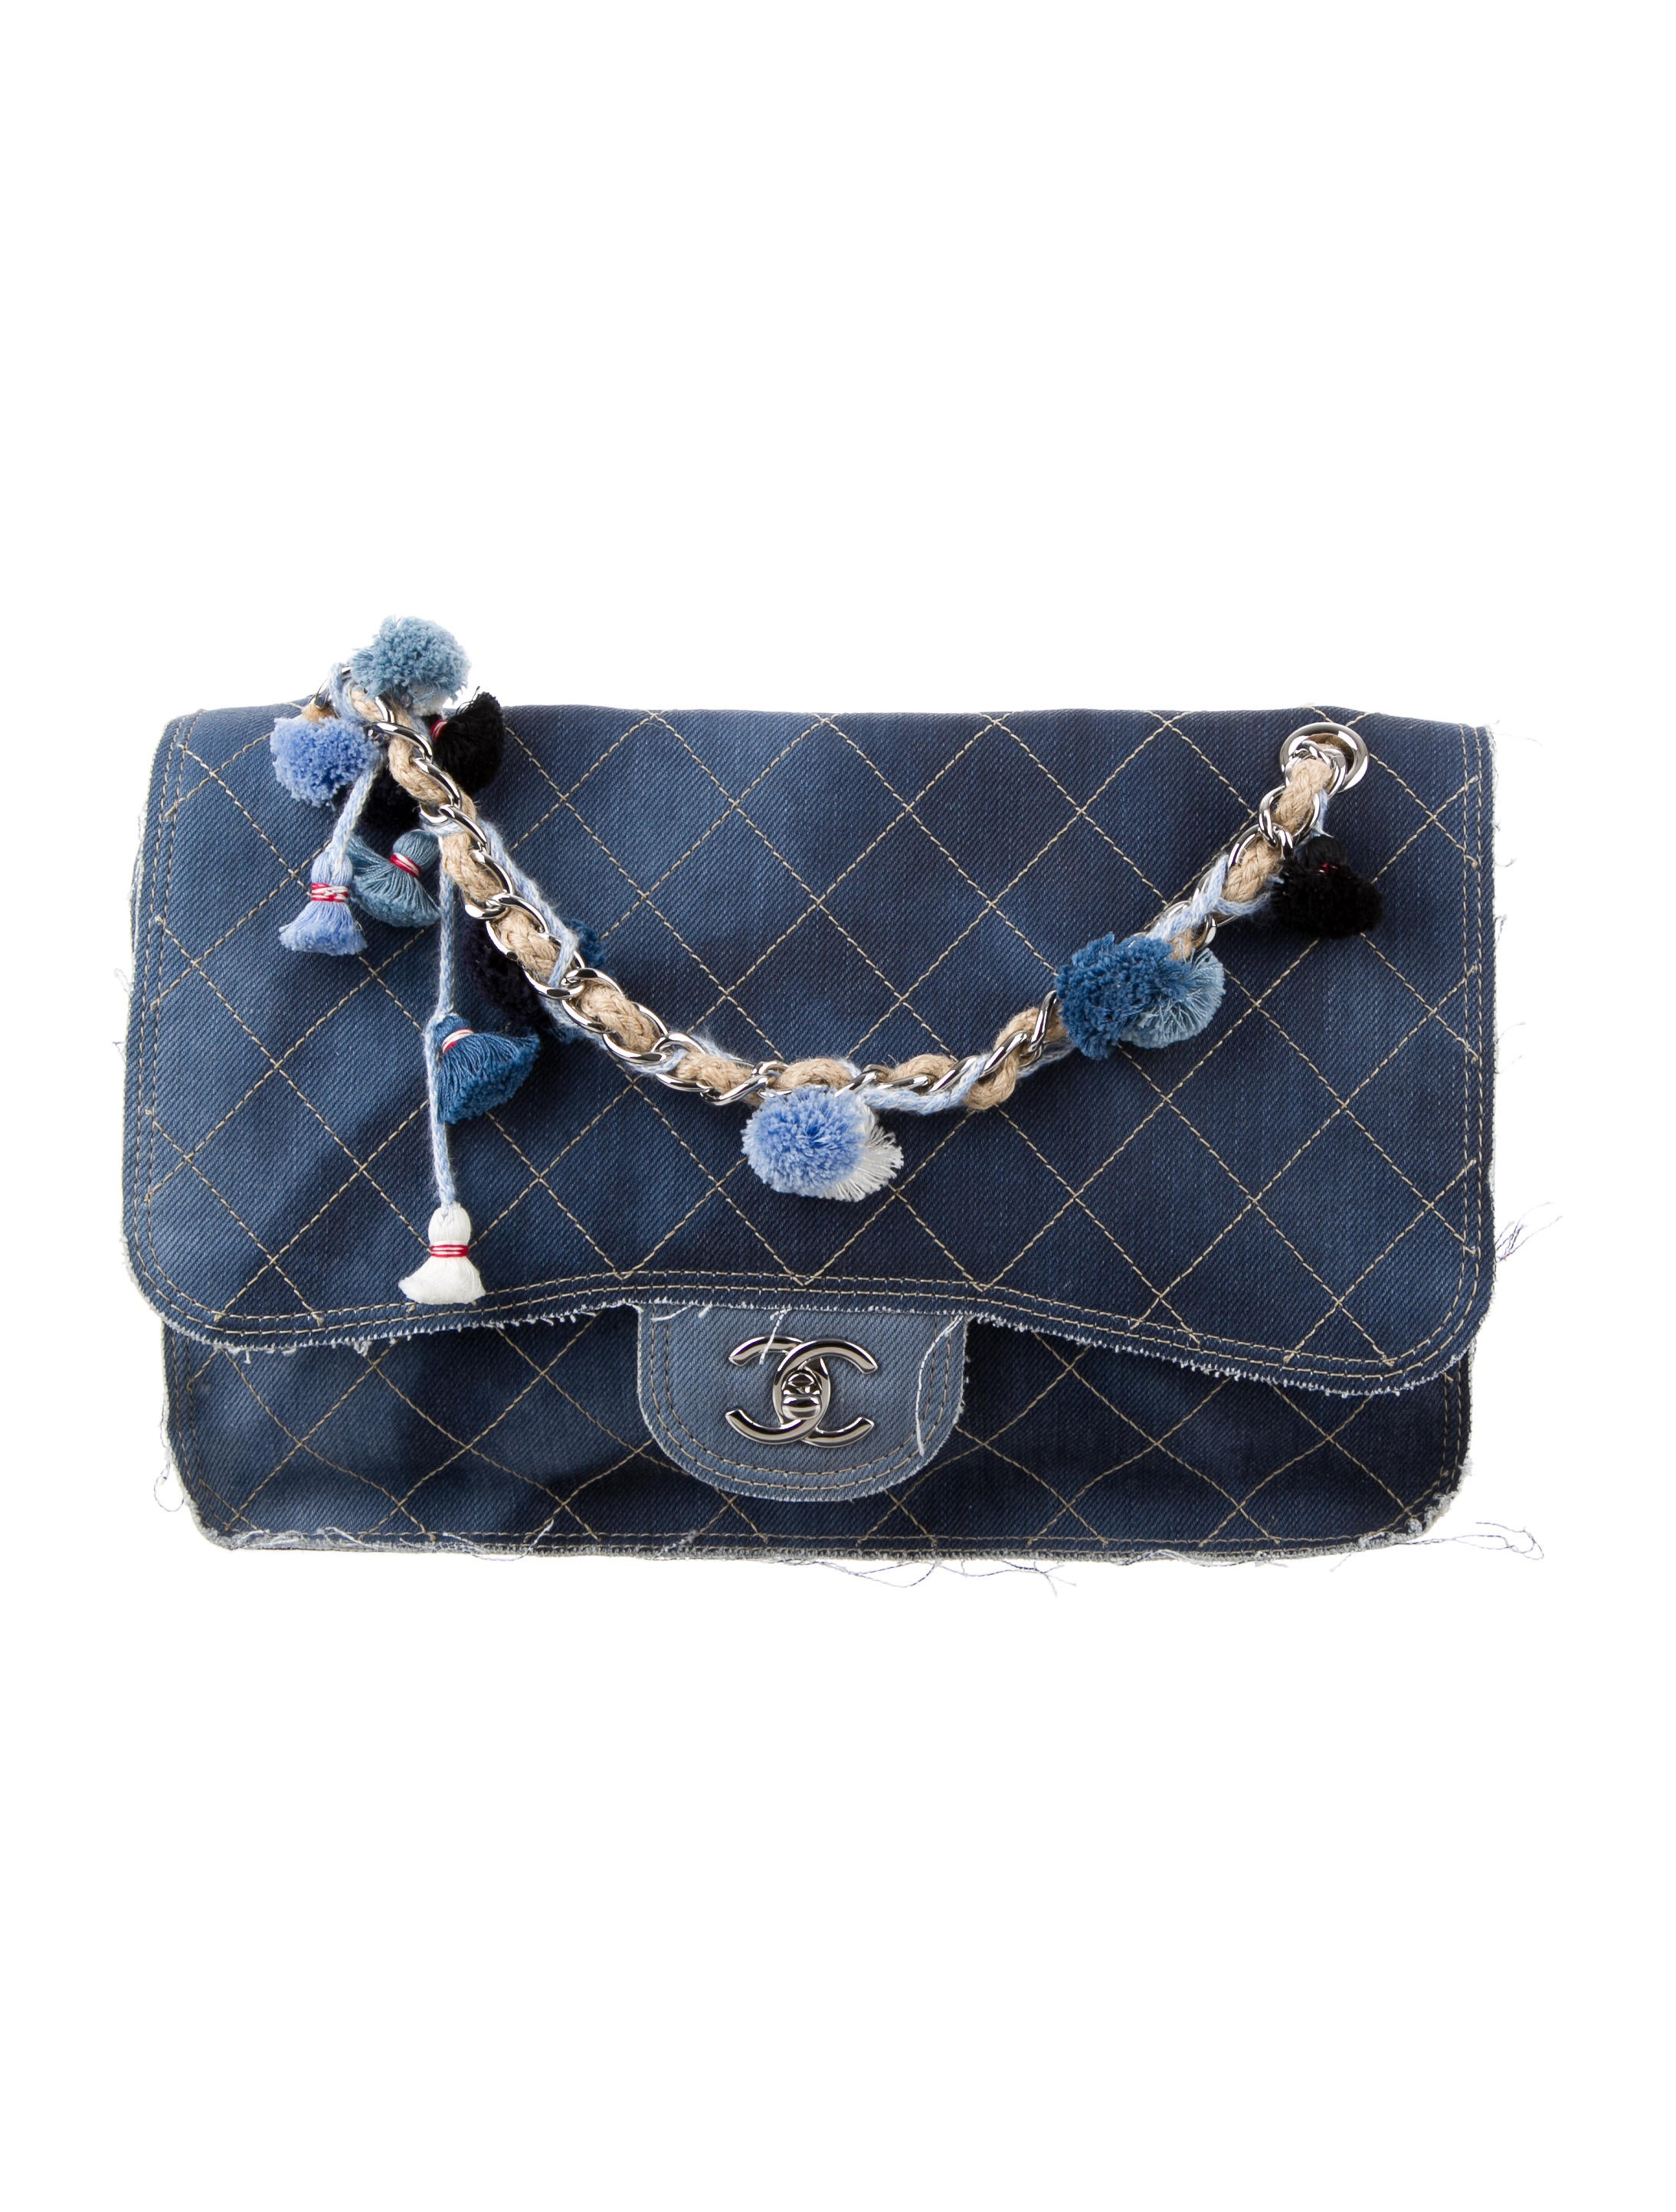 0419107dc7ec Chanel 2015 Large Paris-Dubai Denim Flap Bag - Handbags - CHA159007 | The  RealReal